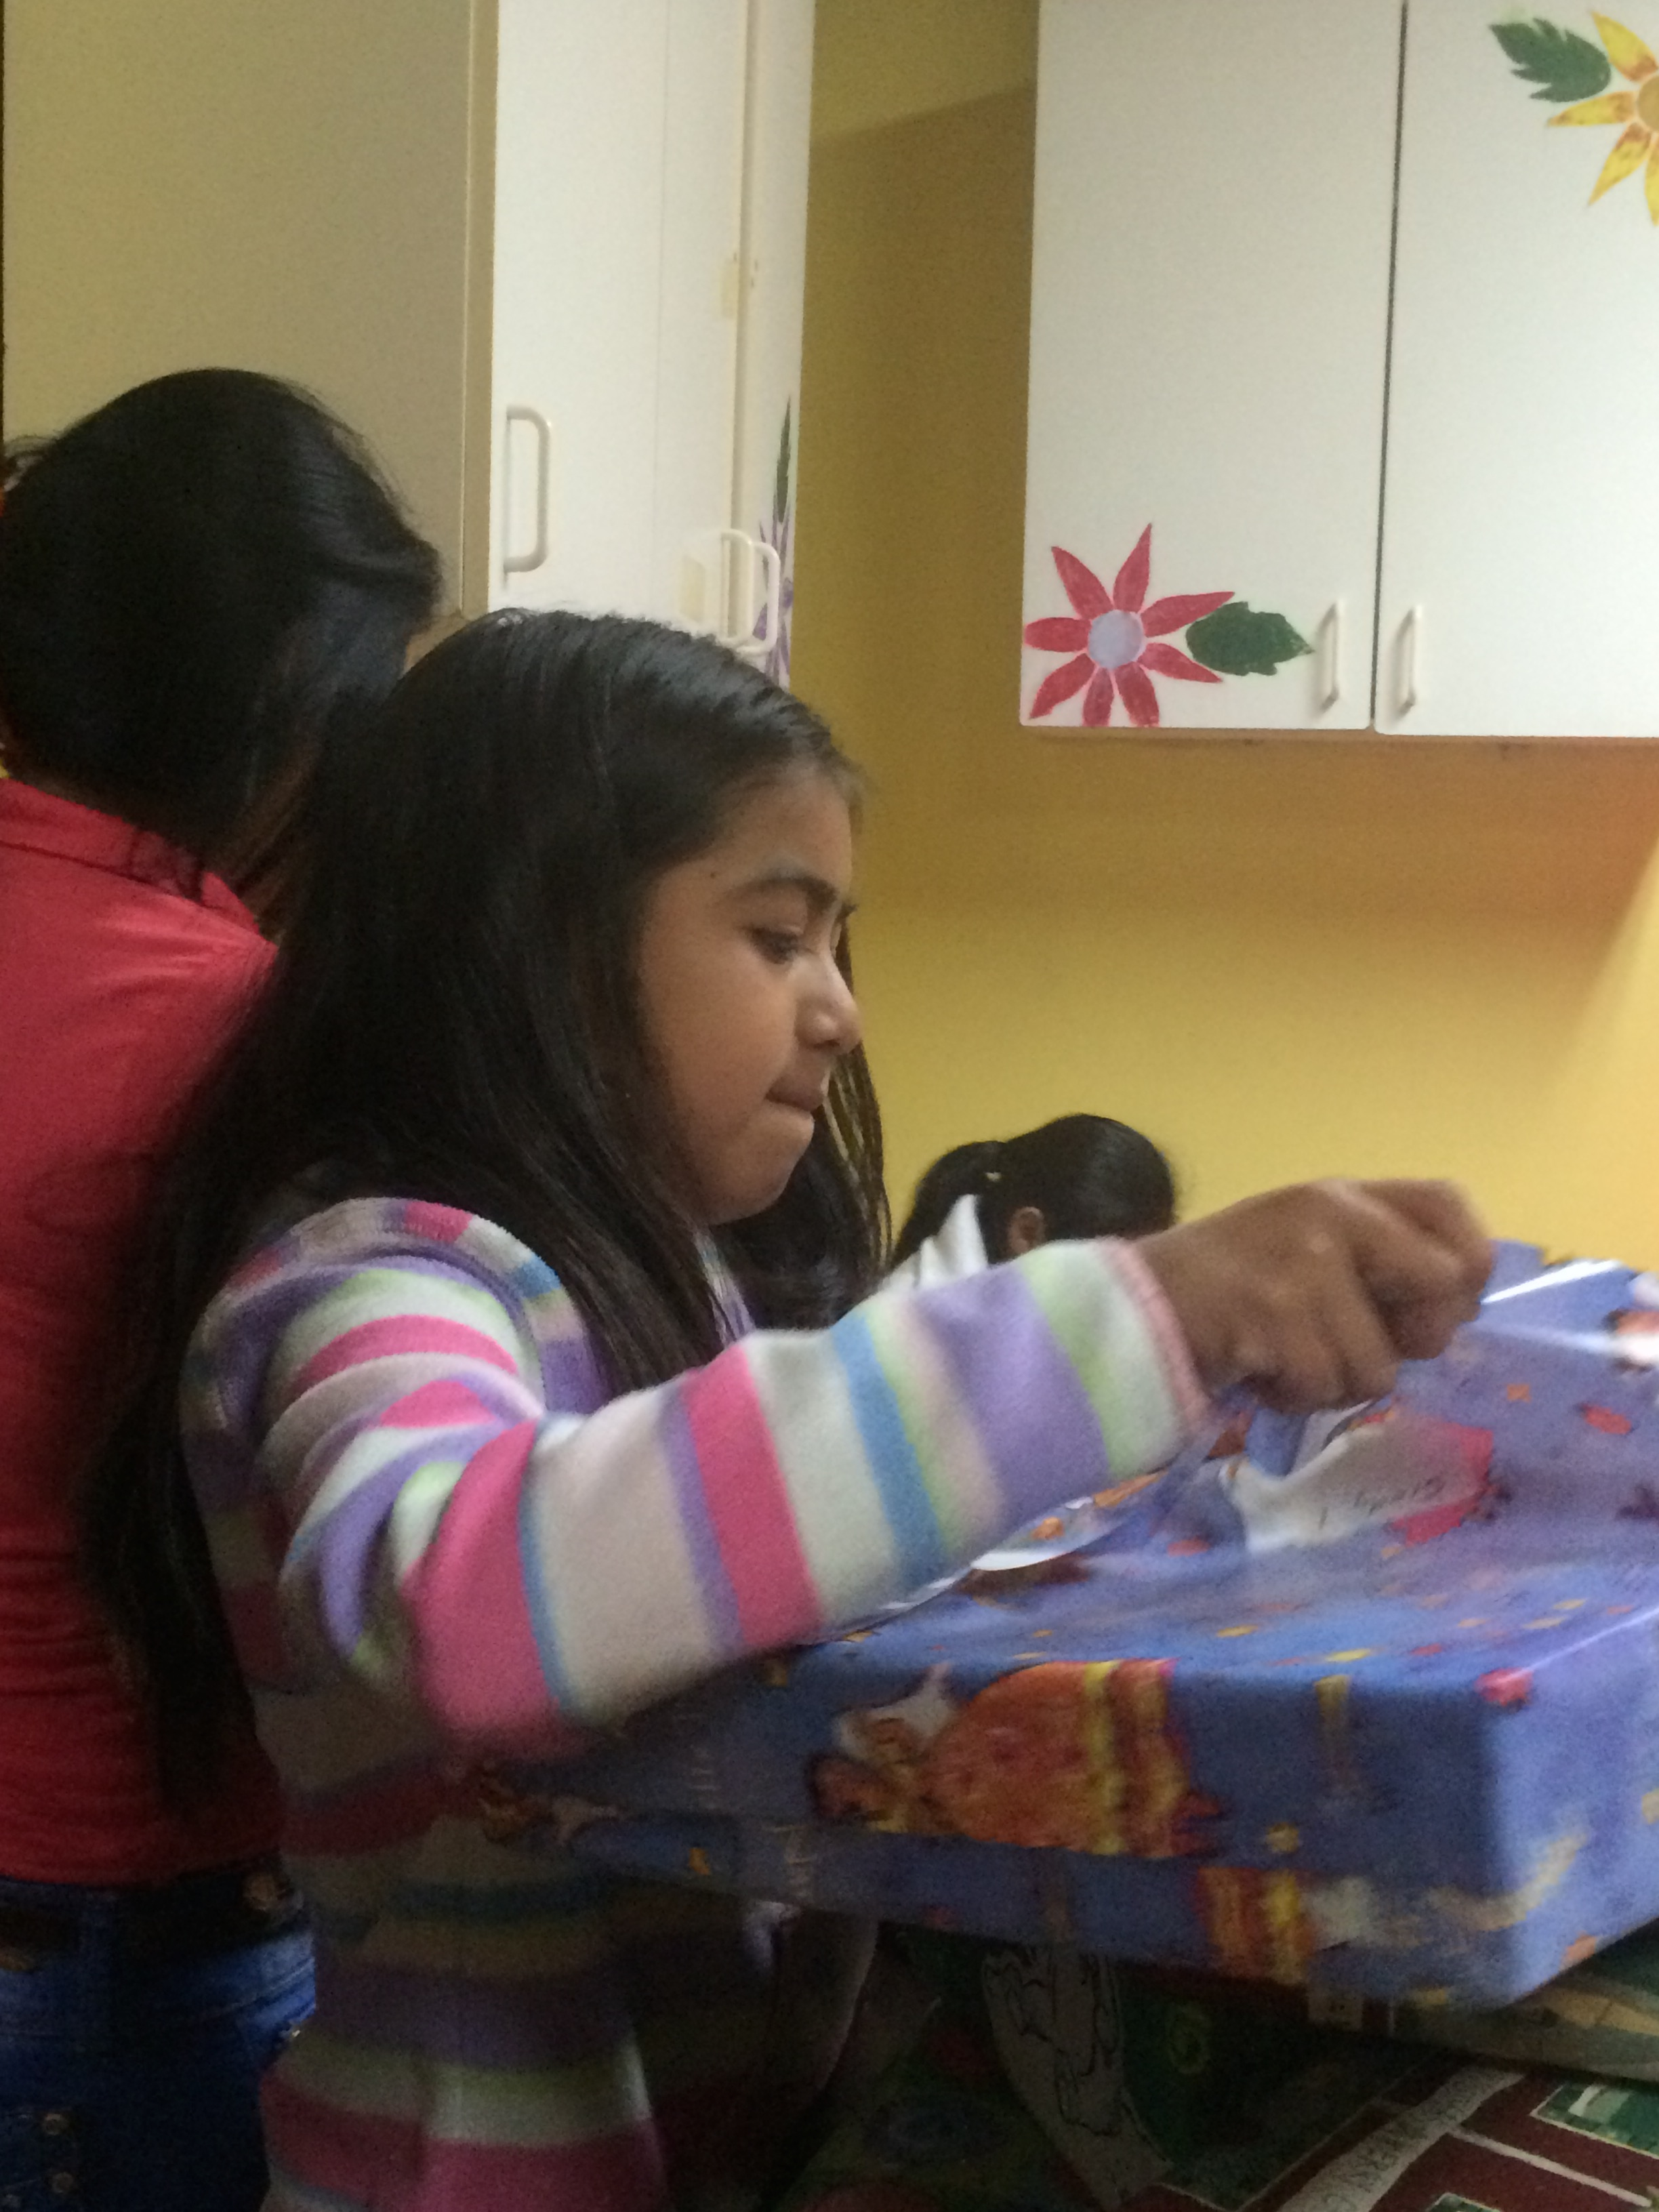 Sindy opening her Christmas gifts